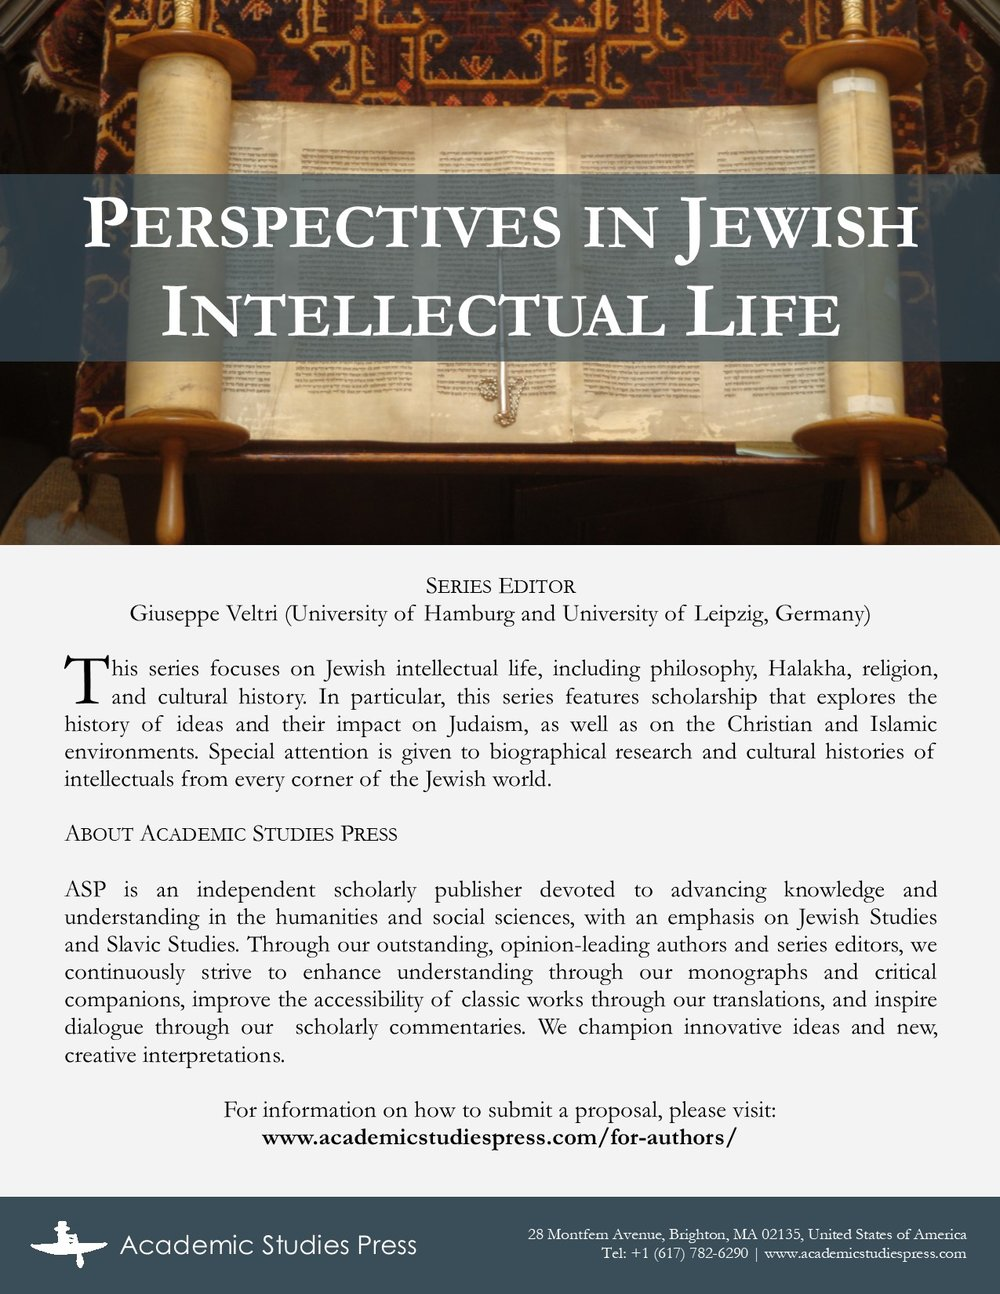 Perspectives in Jewish Intellectual Life Flyer.jpg